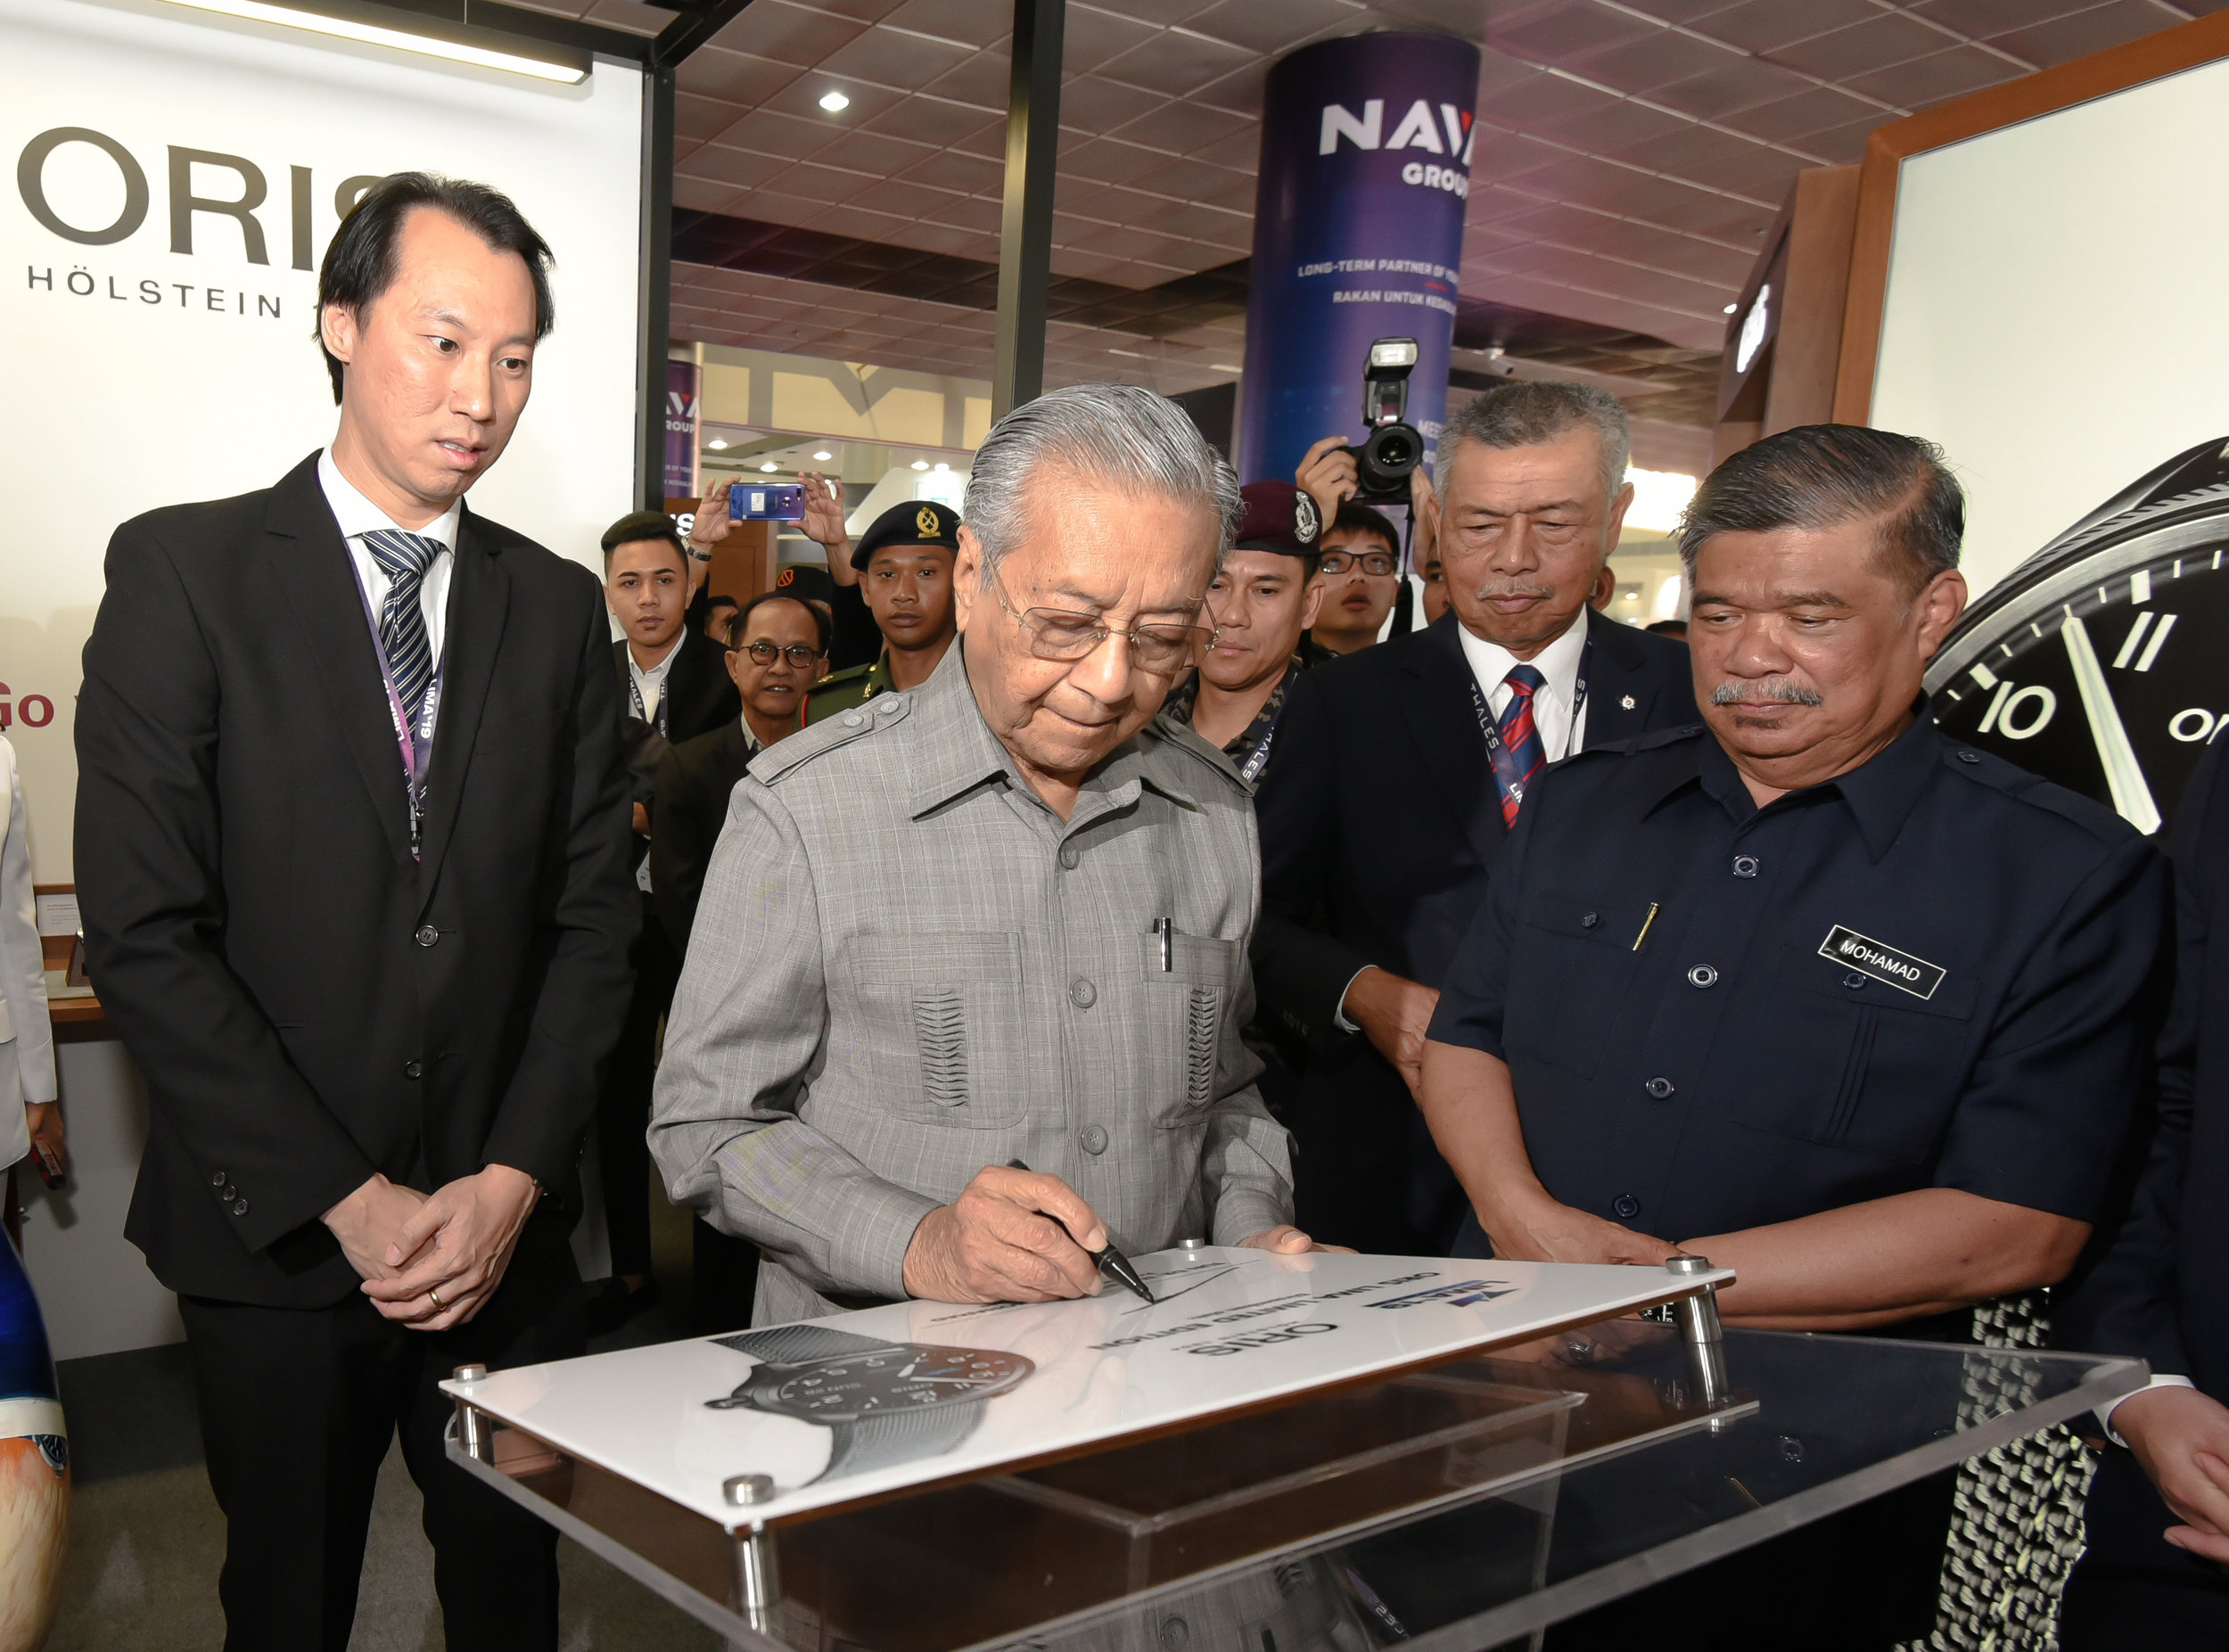 Prime Minister of Malaysia, Tun Dr. Mahathir bin Mohamad, accompanied by Minister of Defense, Mohamad bin Sabu, graciously signed on the Oris plaque to officiate the launch of Oris LIMA Limited Edition.